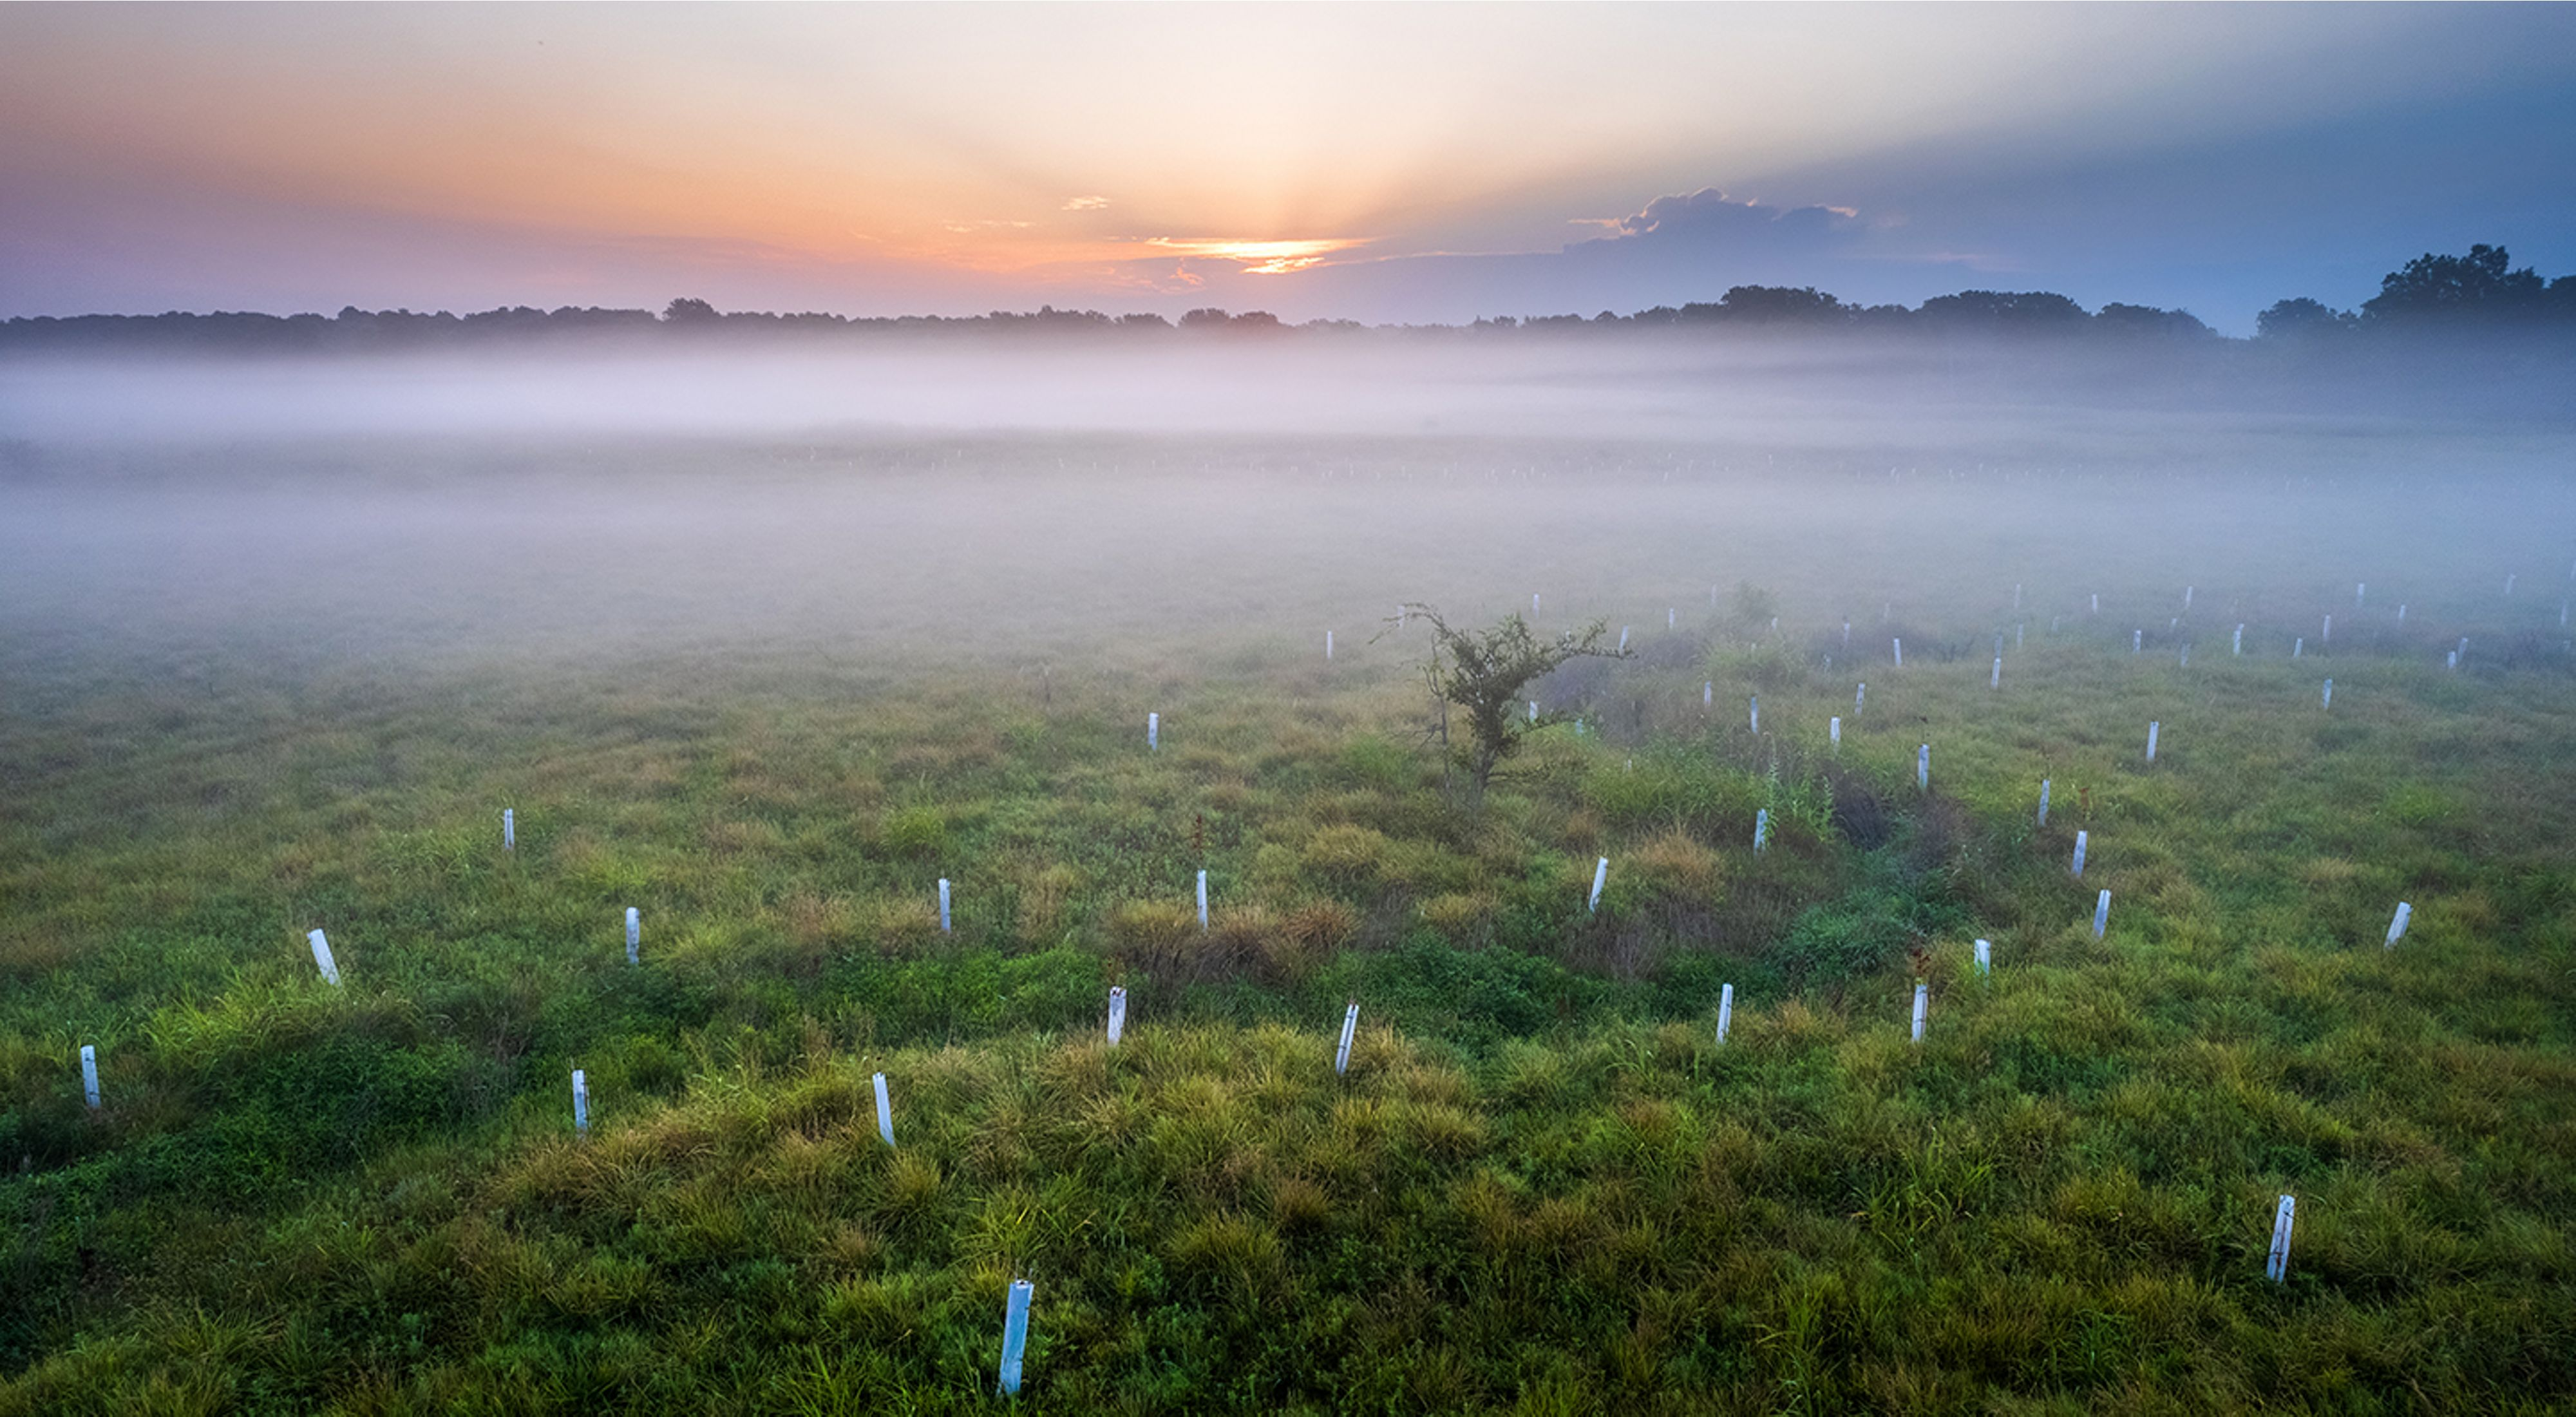 Early morning fog rising over a stream surrounded by newly planted trees.